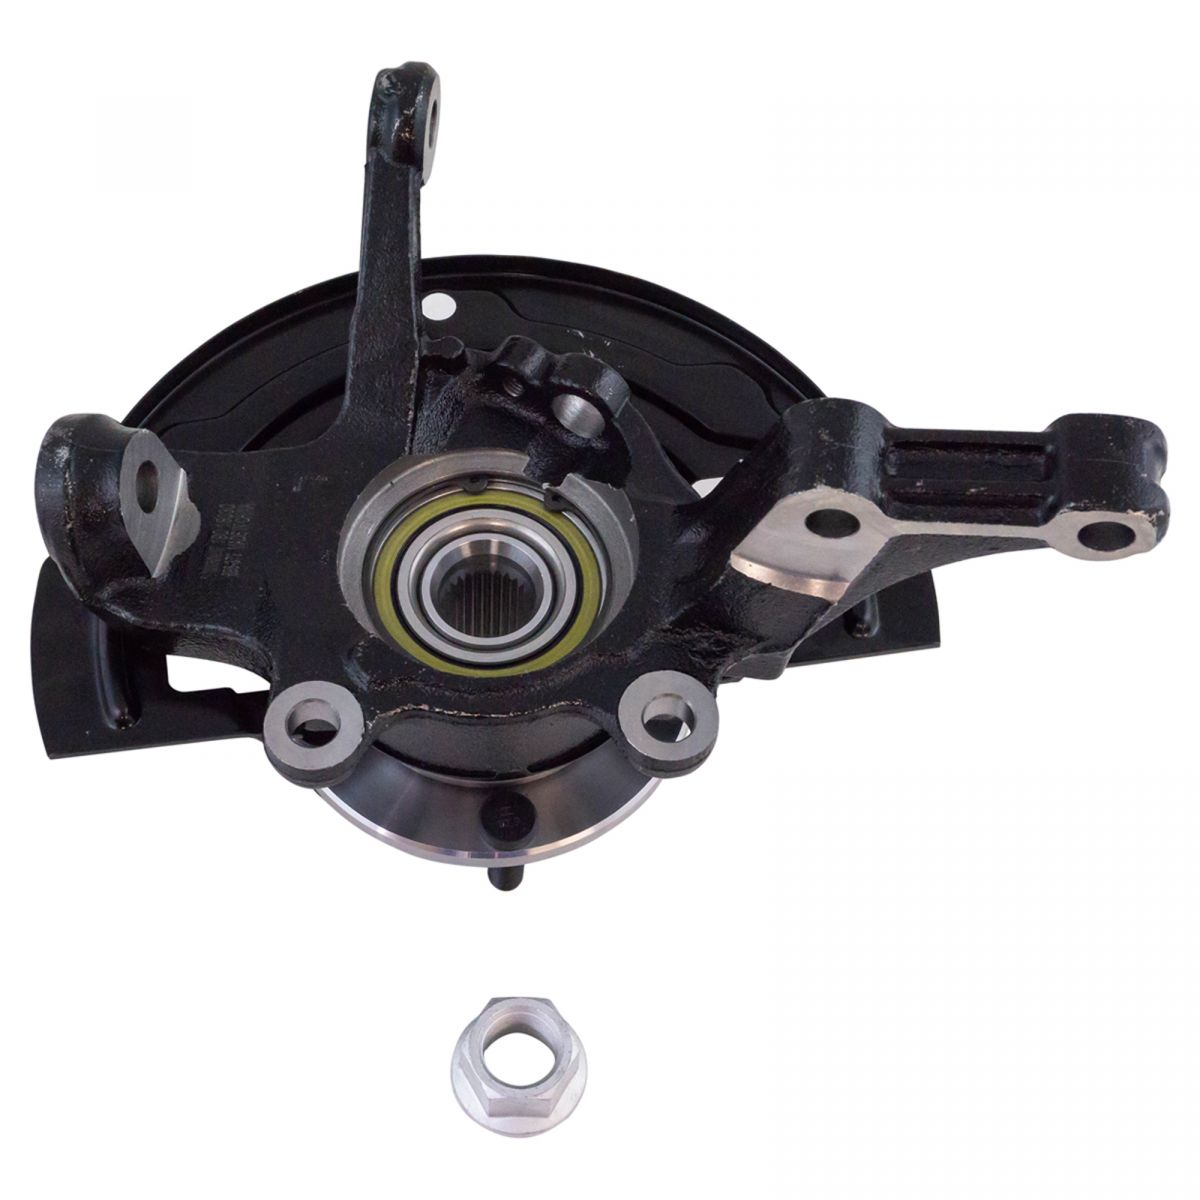 Complete Wheel Hub Bearing & Steering Knuckle Assembly LH for Nissan Altima 2.5L